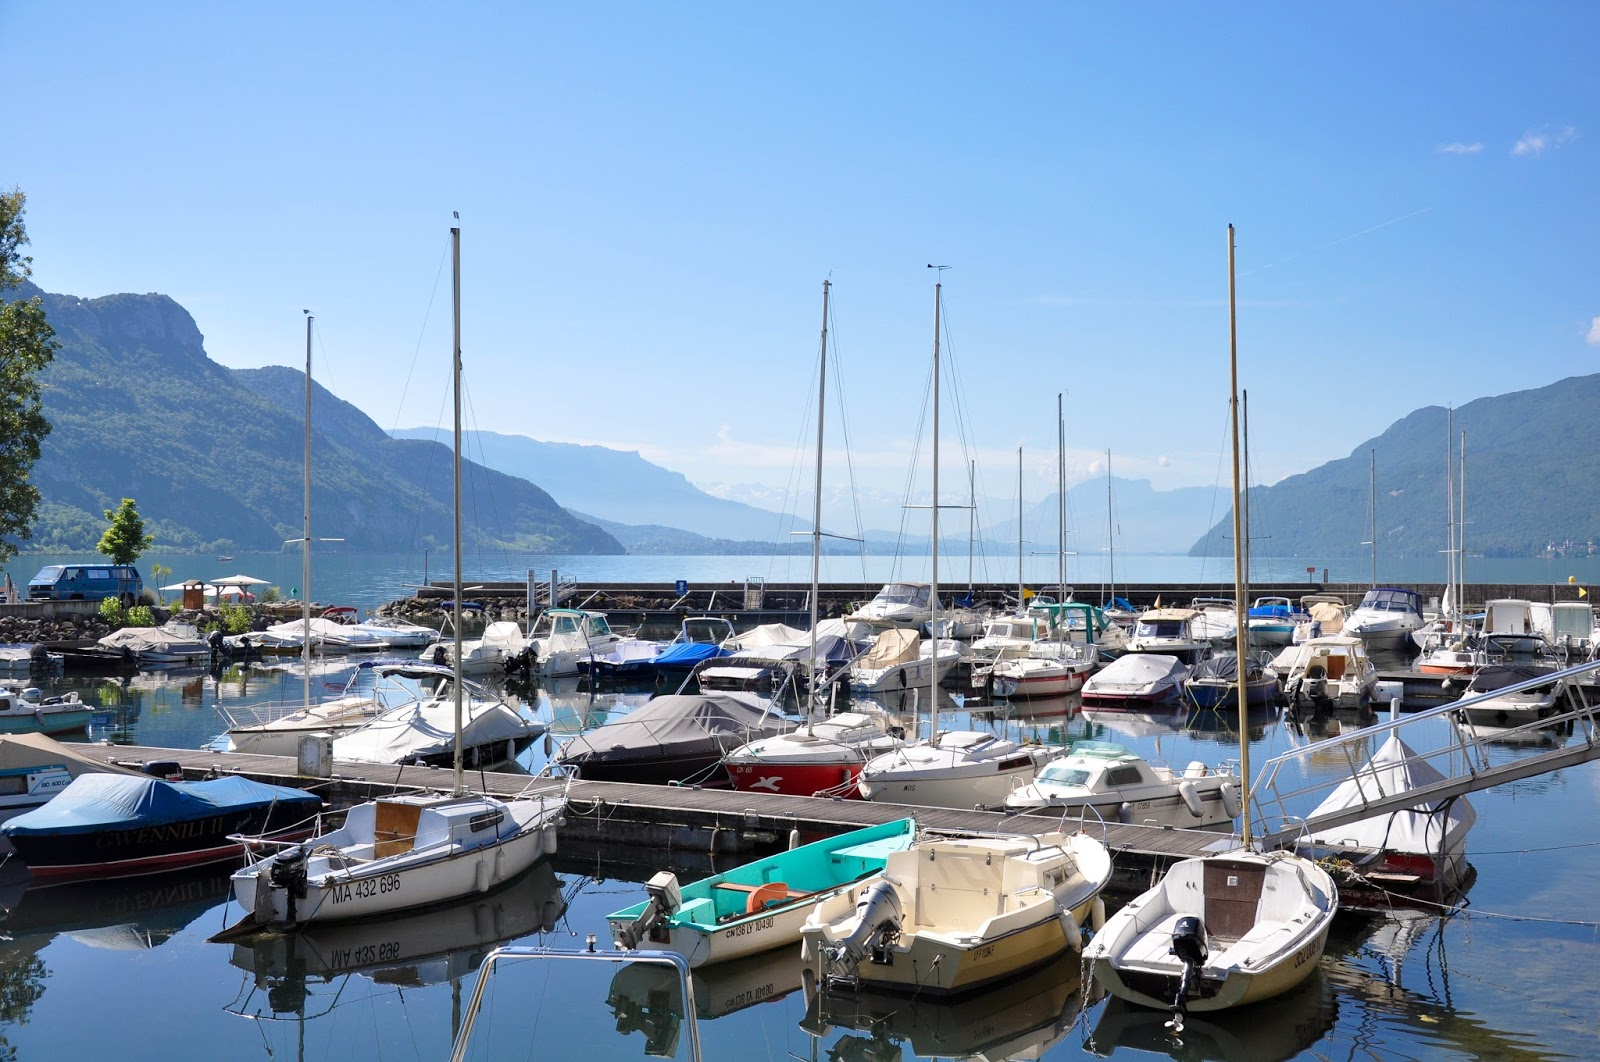 Marina on the shores of Lake Bourget, France's largest lake